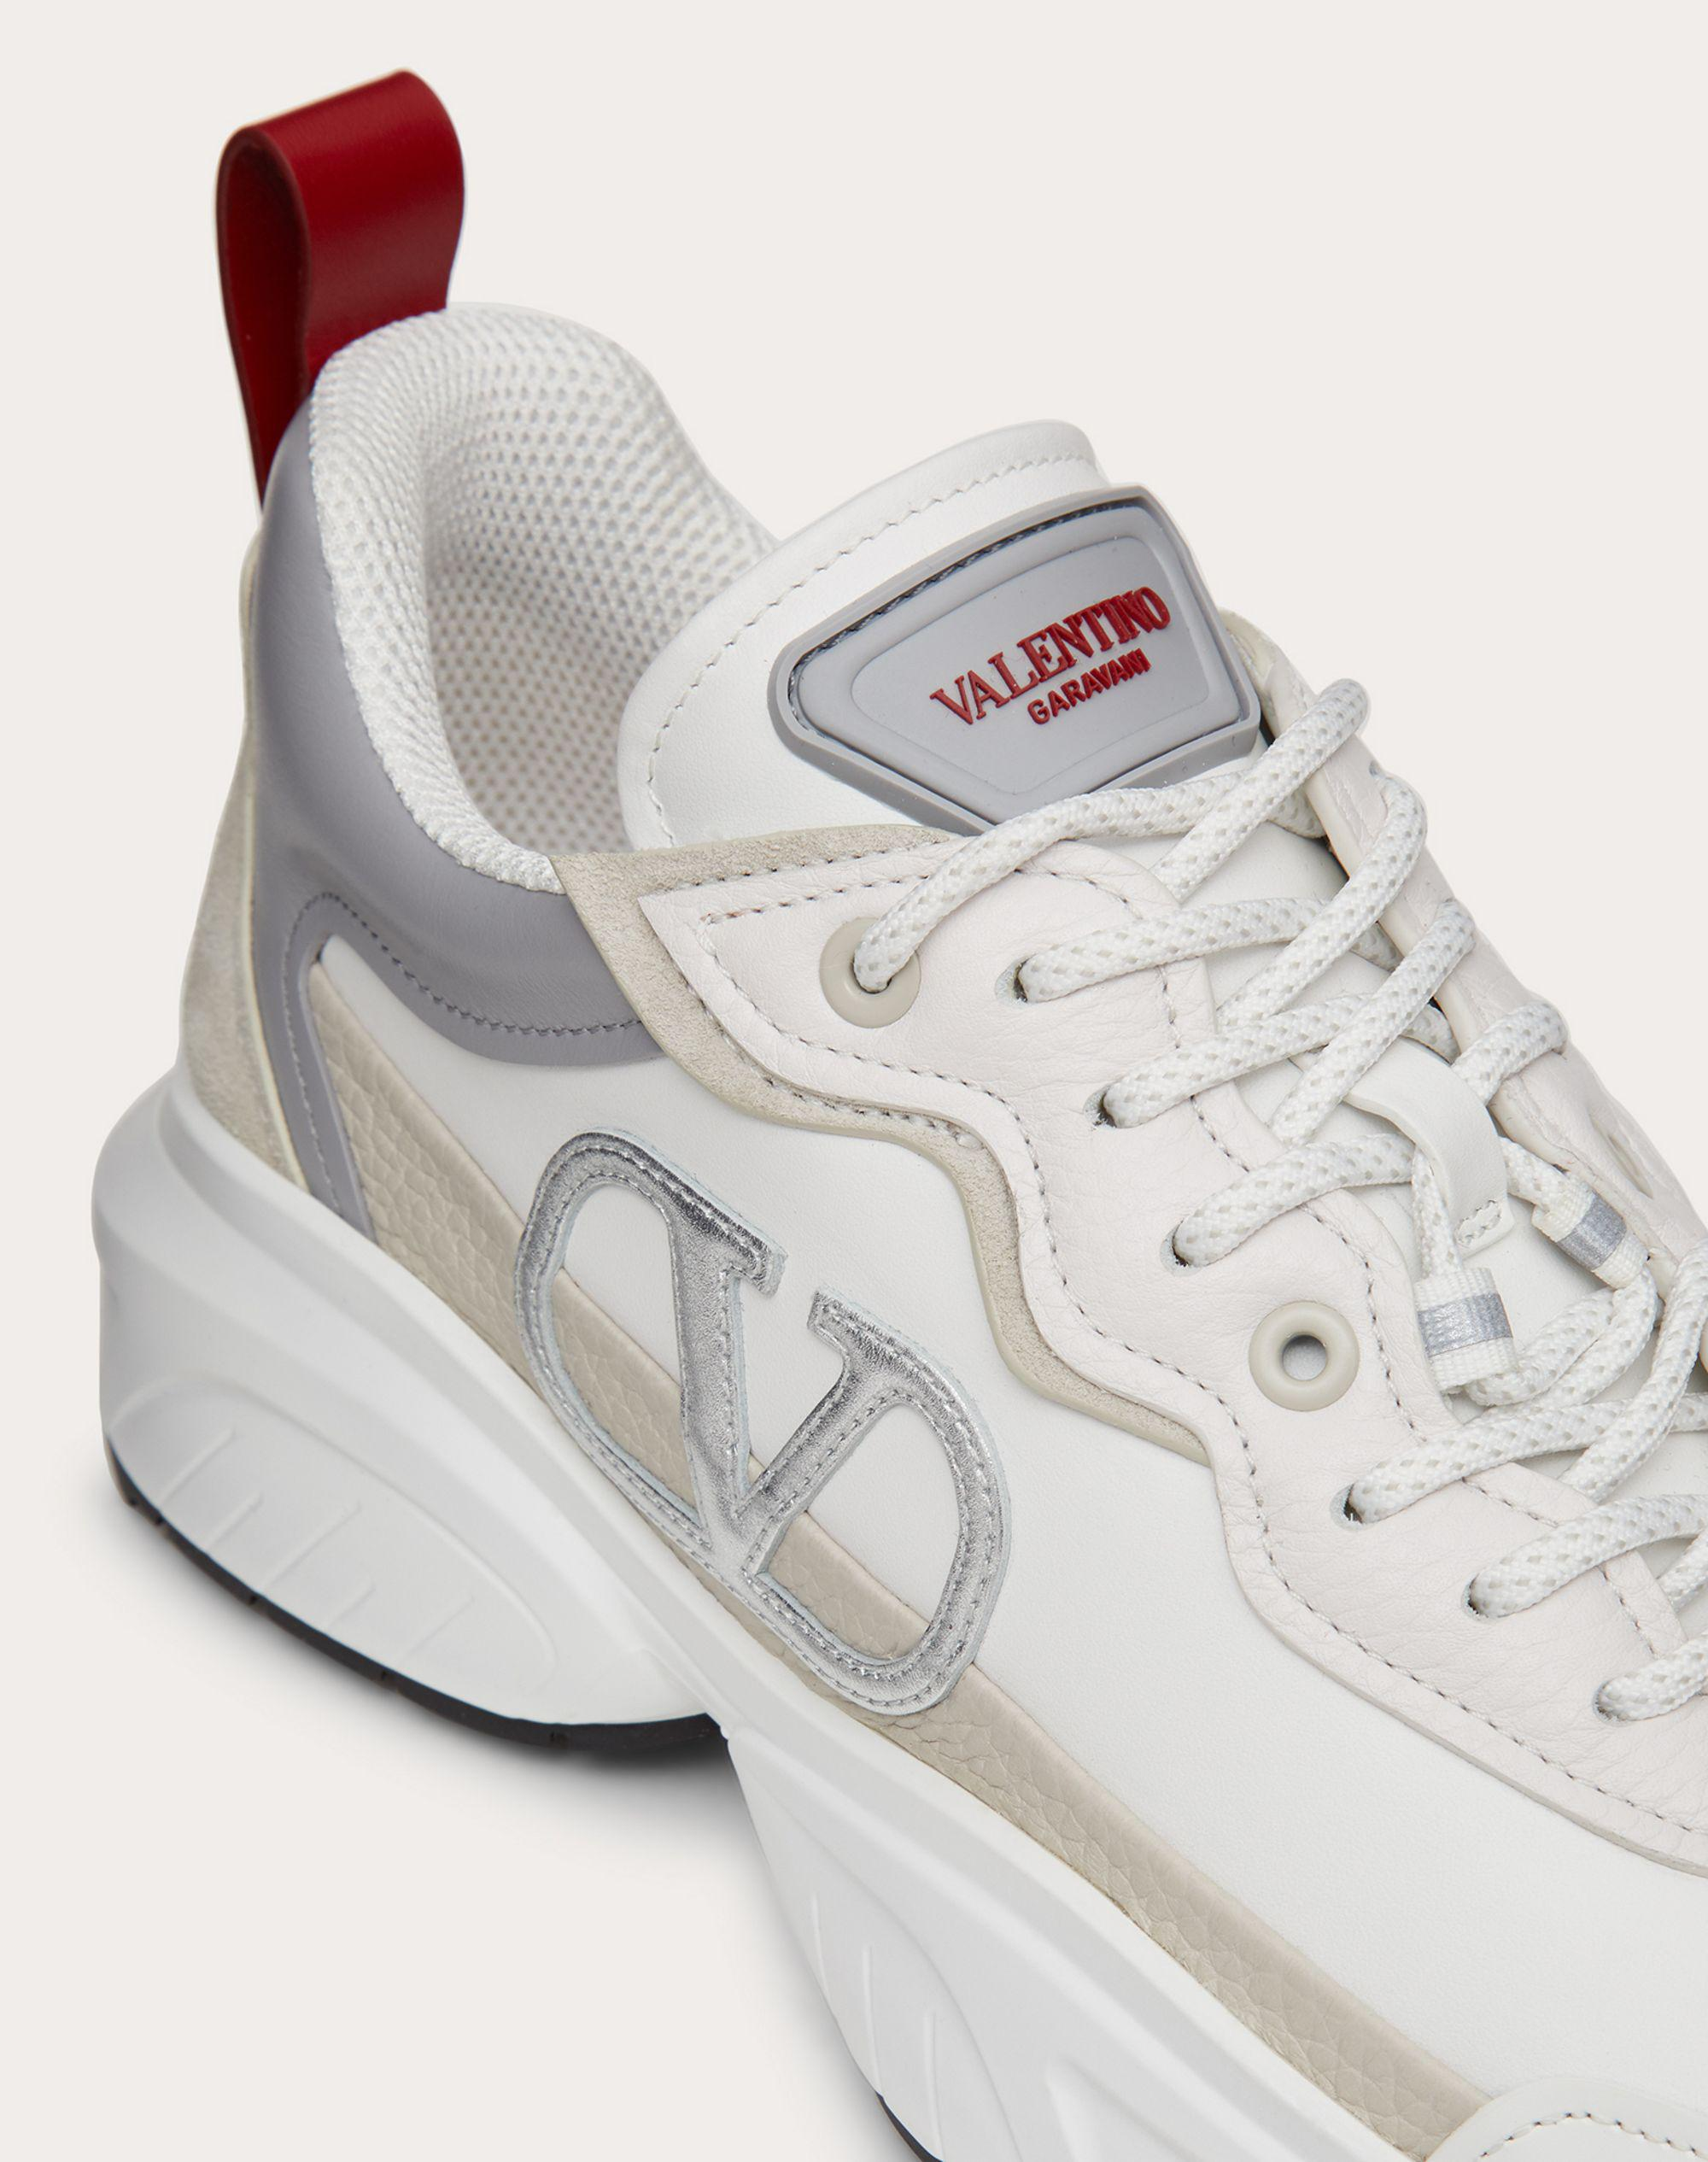 SHEGOES Sneaker in split leather and calfskin leather 4